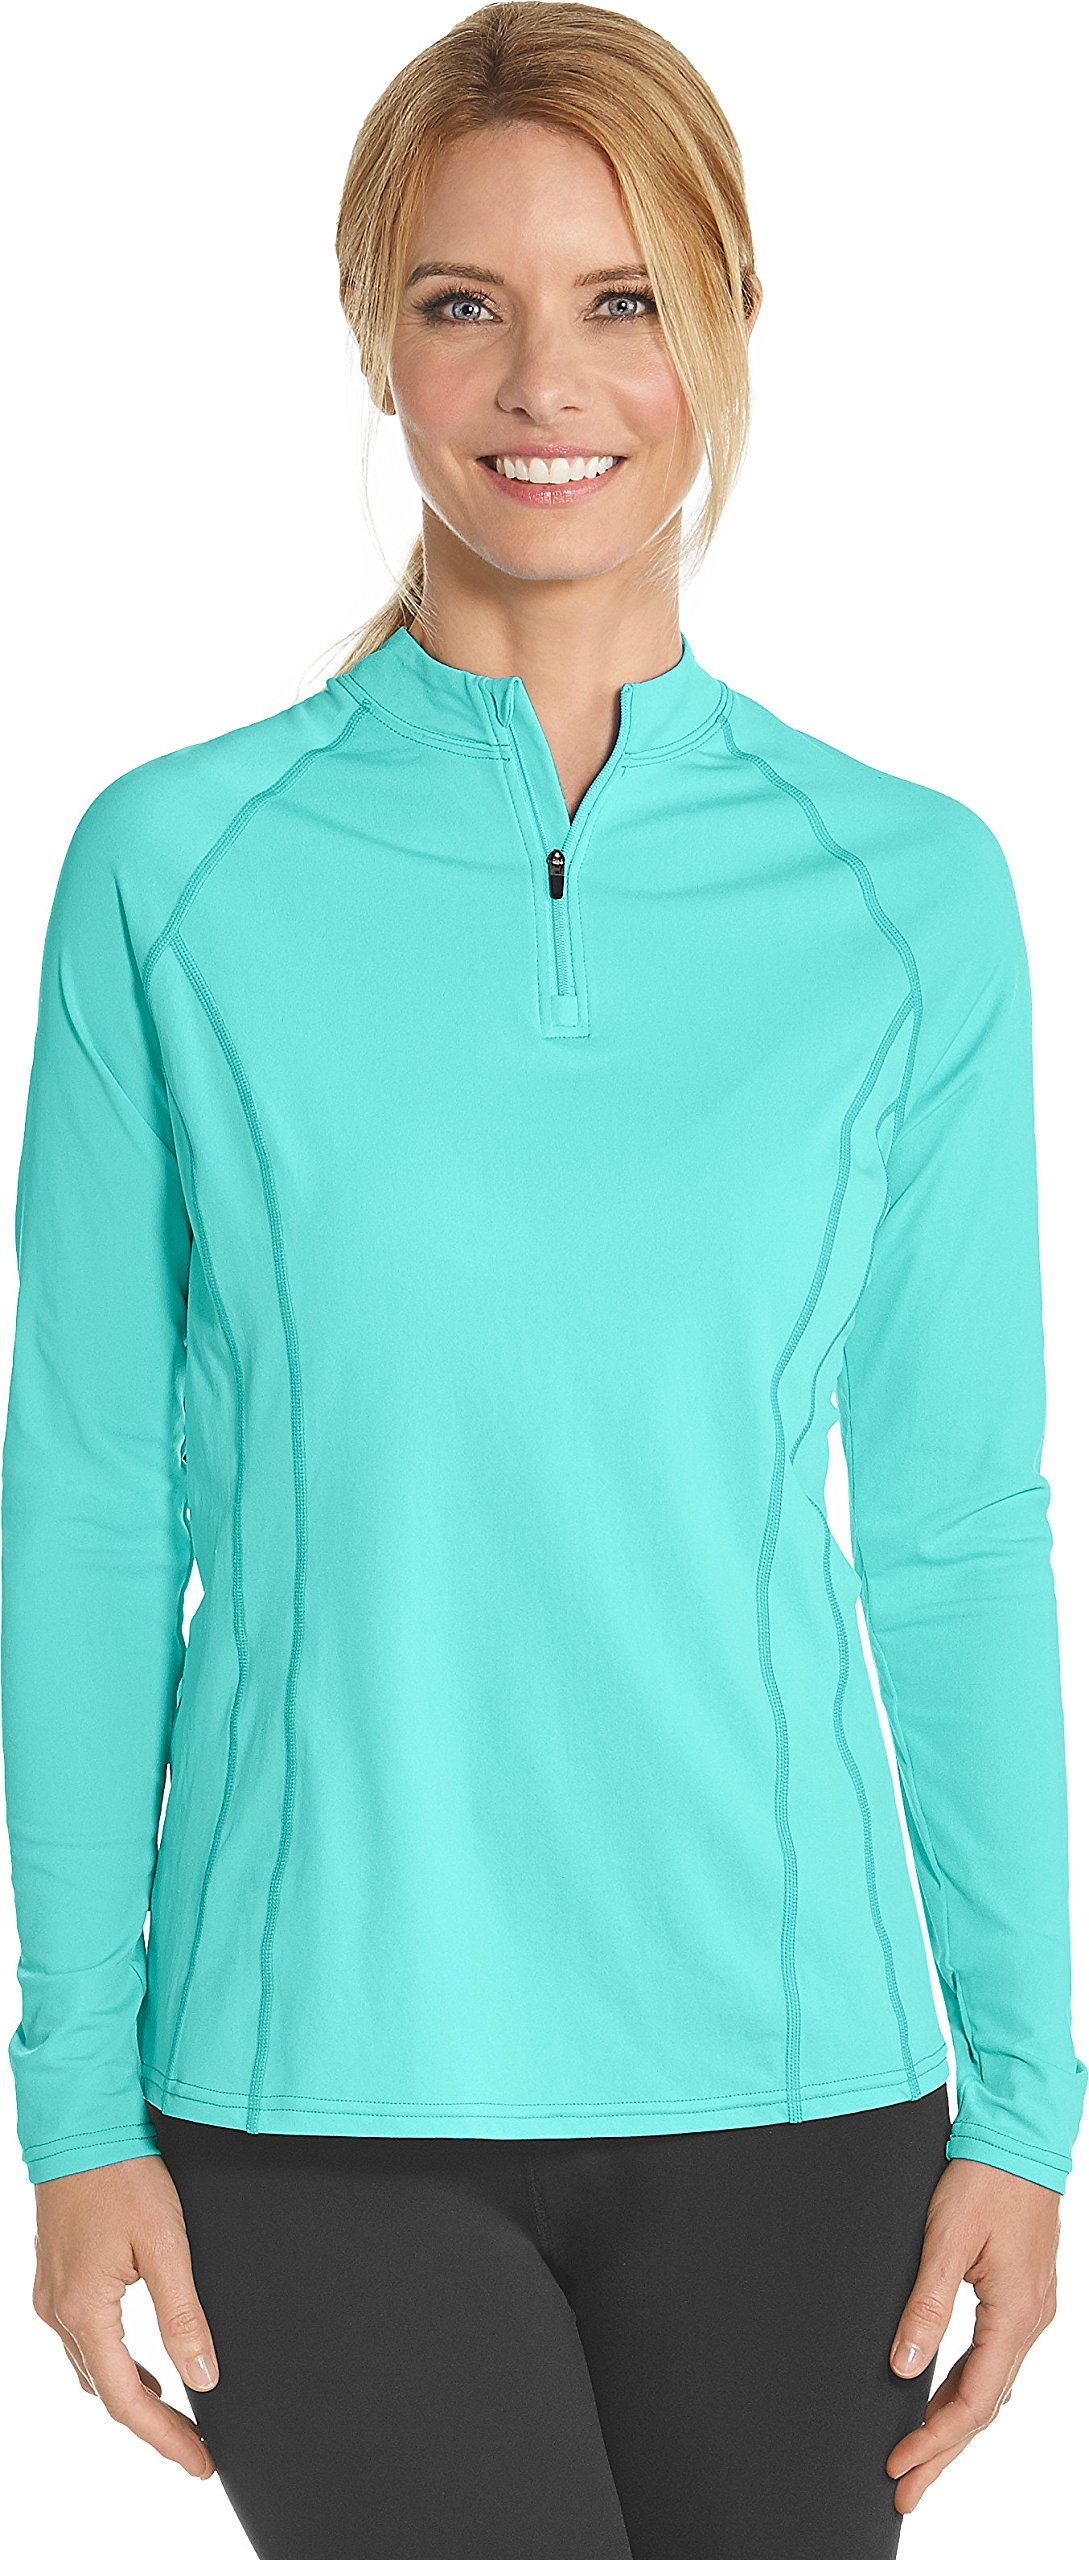 Coolibar UPF 50+ Women's Long Sleeve Freestyle Rash Guard - Sun Protective (XX-Large- Tropical Mint)